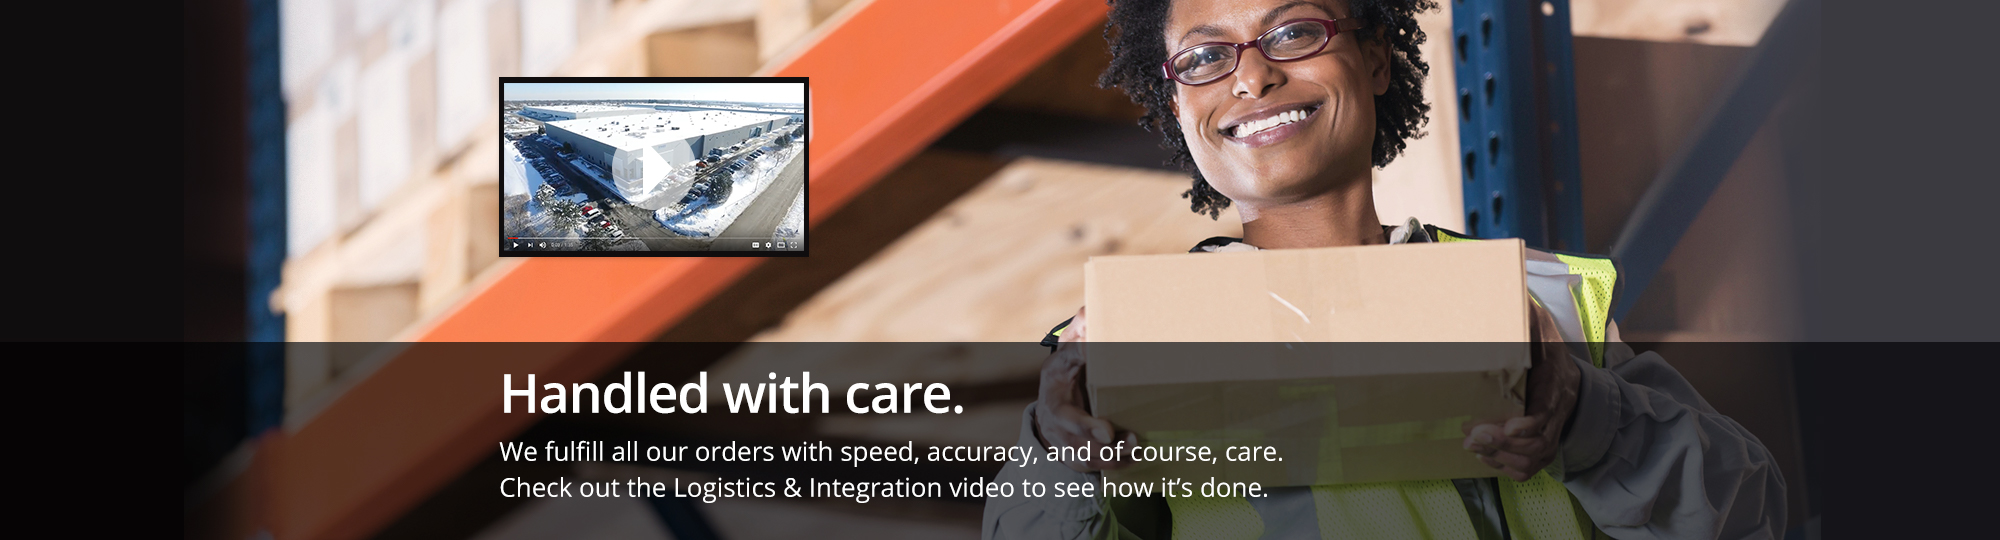 Handled with care. We fulfill all our orders with speed, accuracy, and of course, care. Check out the Logistics and Integration video to see how it's done. Watch Now.